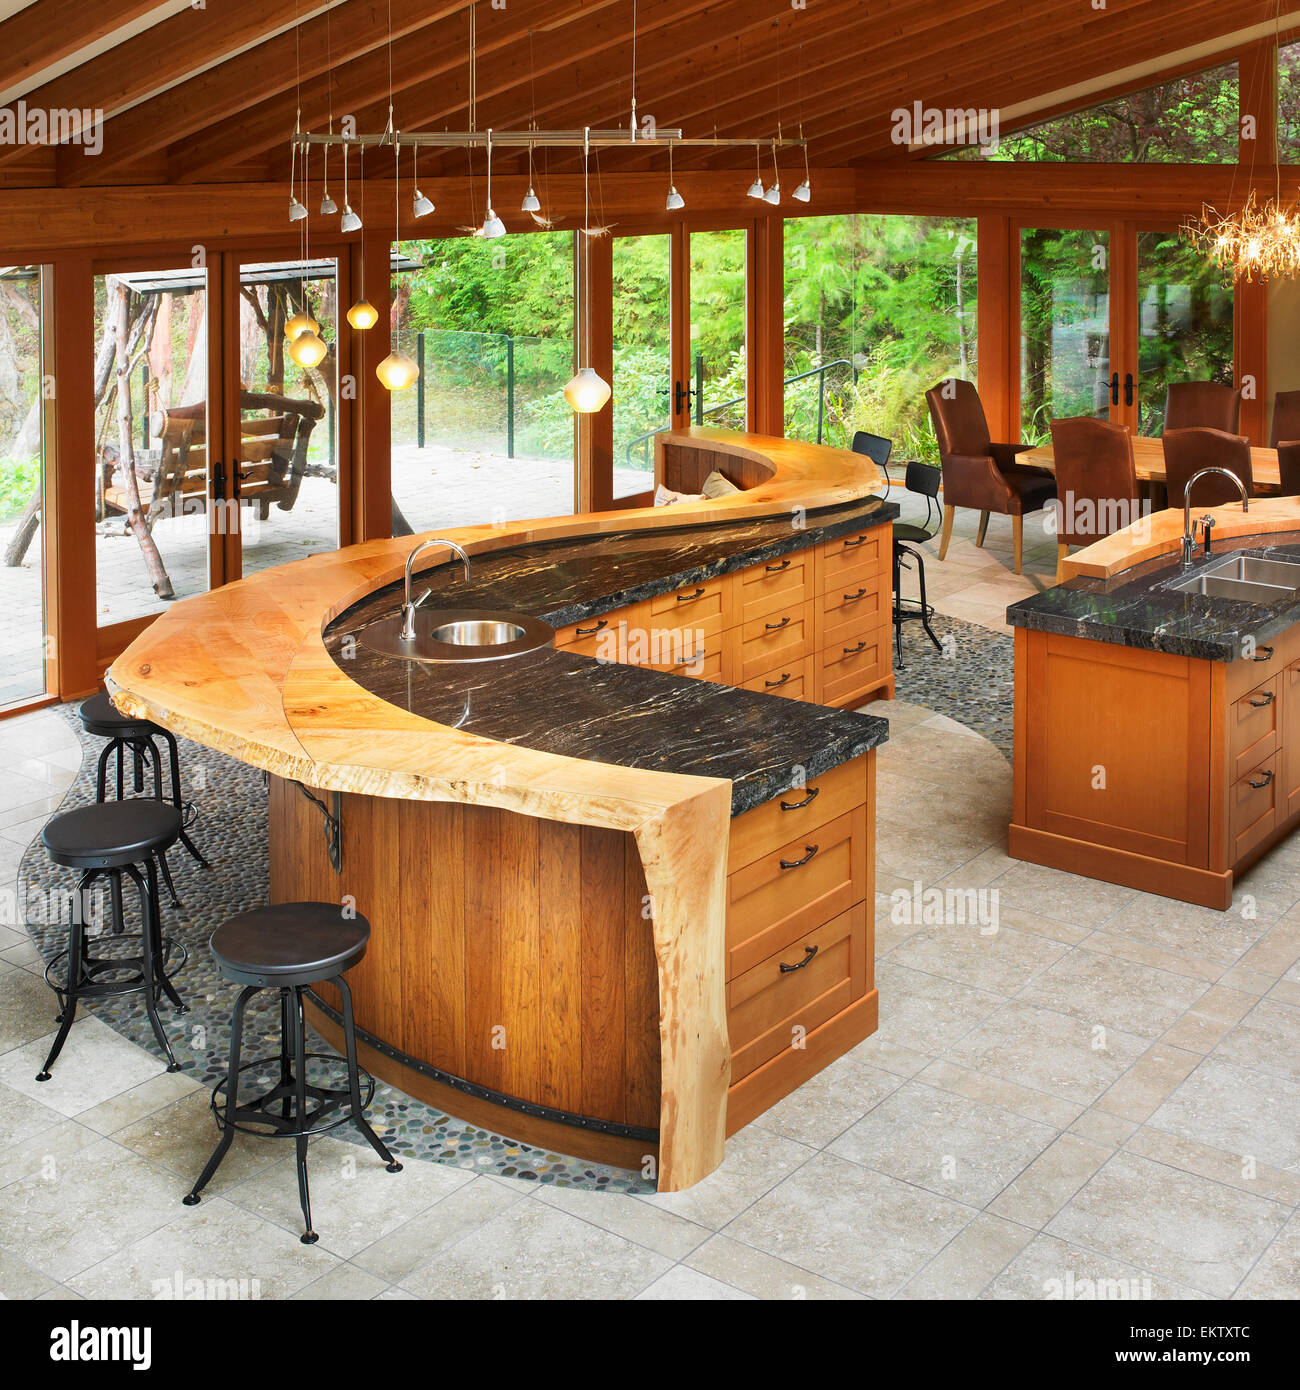 West Coast Style Kitchen With Curved Wood And Marble Stock Photo: 81067852